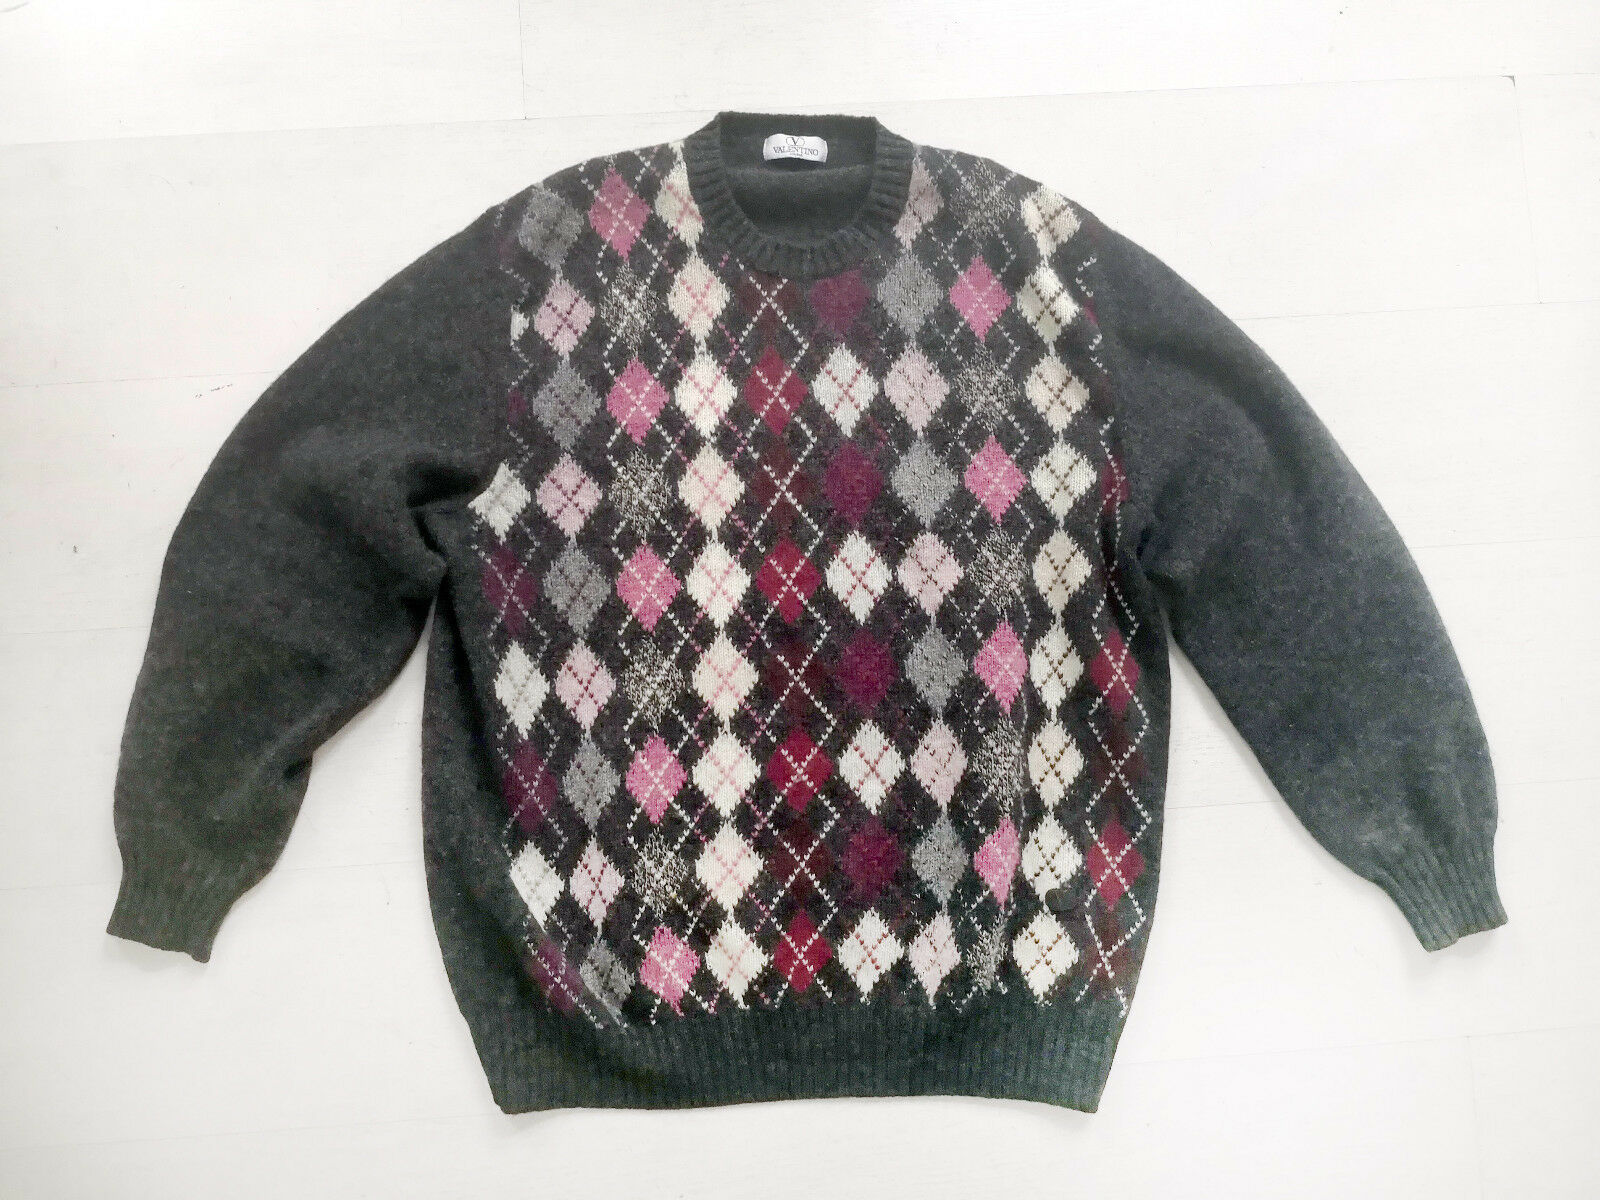 VALENTINO soft 100% virgin wool sweater , Größe L